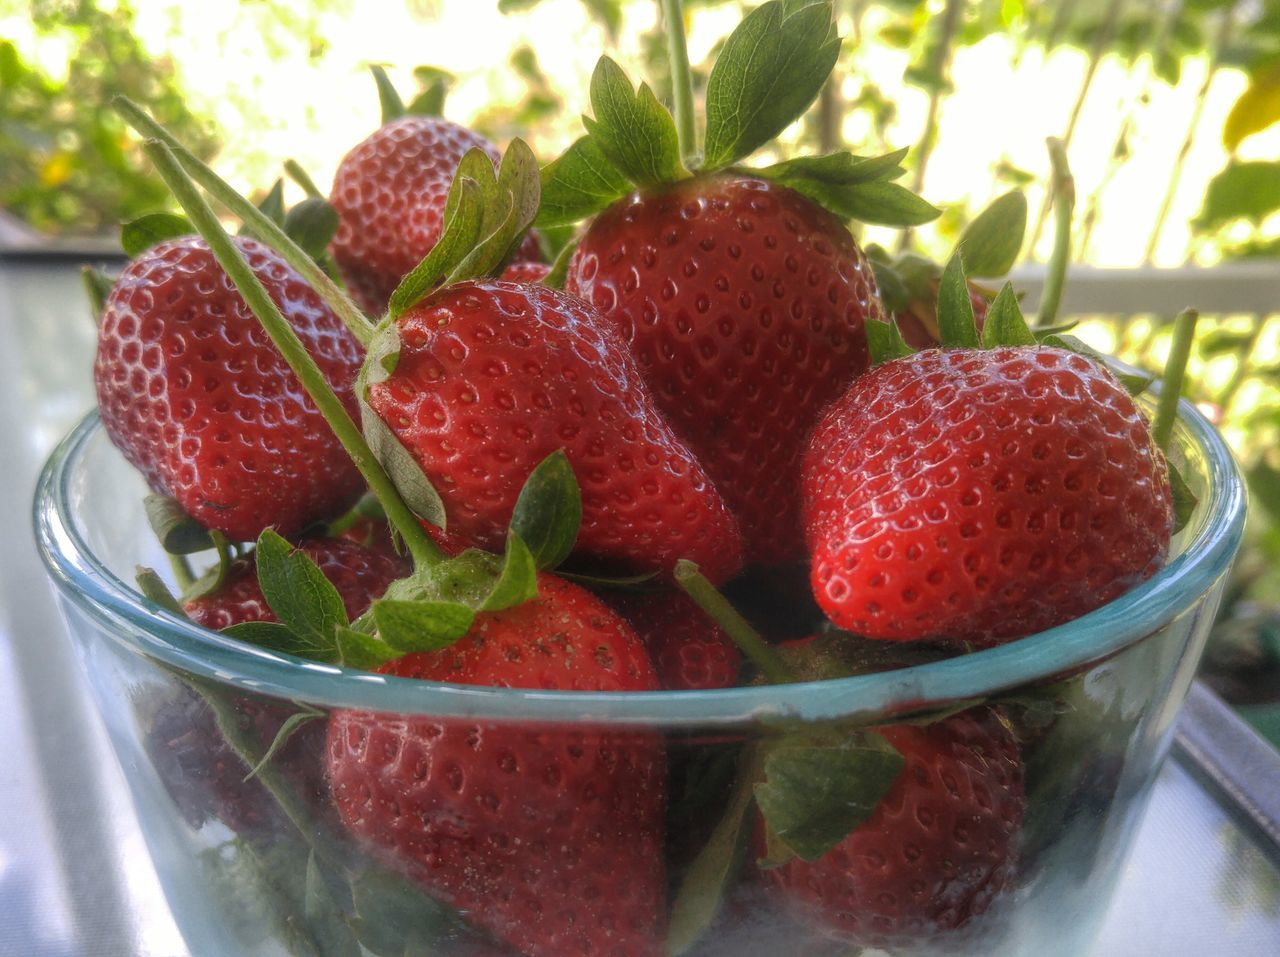 Fruit Strawberry Freshness Healthy Eating Close-up Berry Fruit Red No People Bowl Food Food And Drink Juicy Green Color Tasty Delicious Fruit Berries Strawberries Breakfast Natural Food And Drink Freshness Landscape Close Up Close Up Photography Agriculture